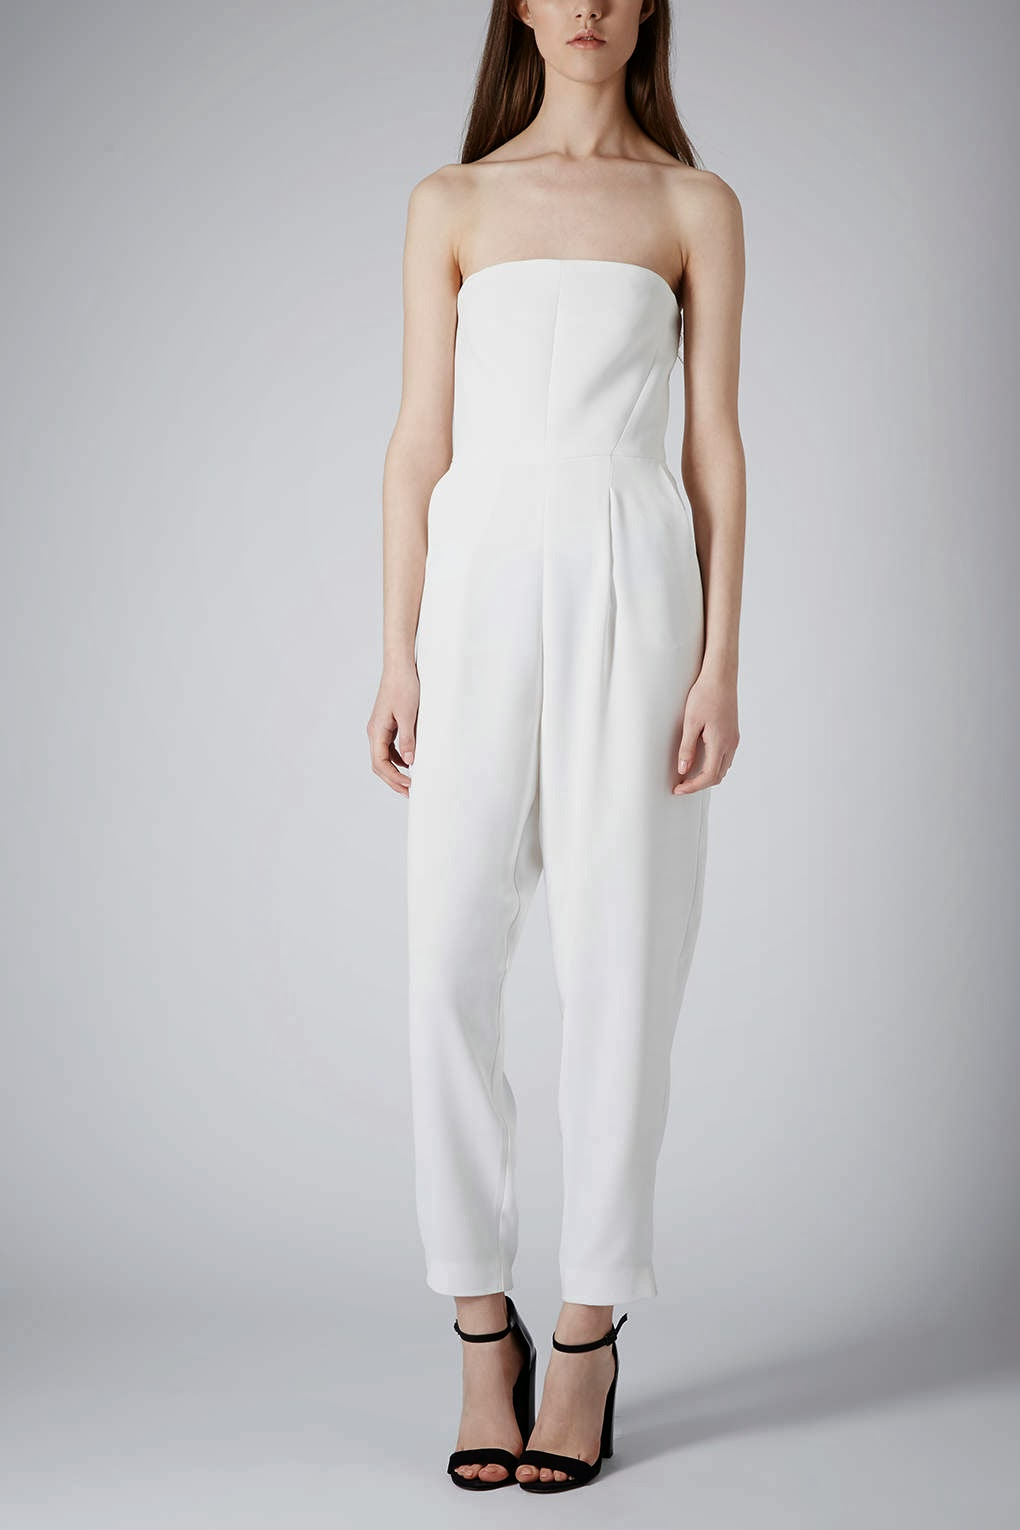 topshop white jumpsuit